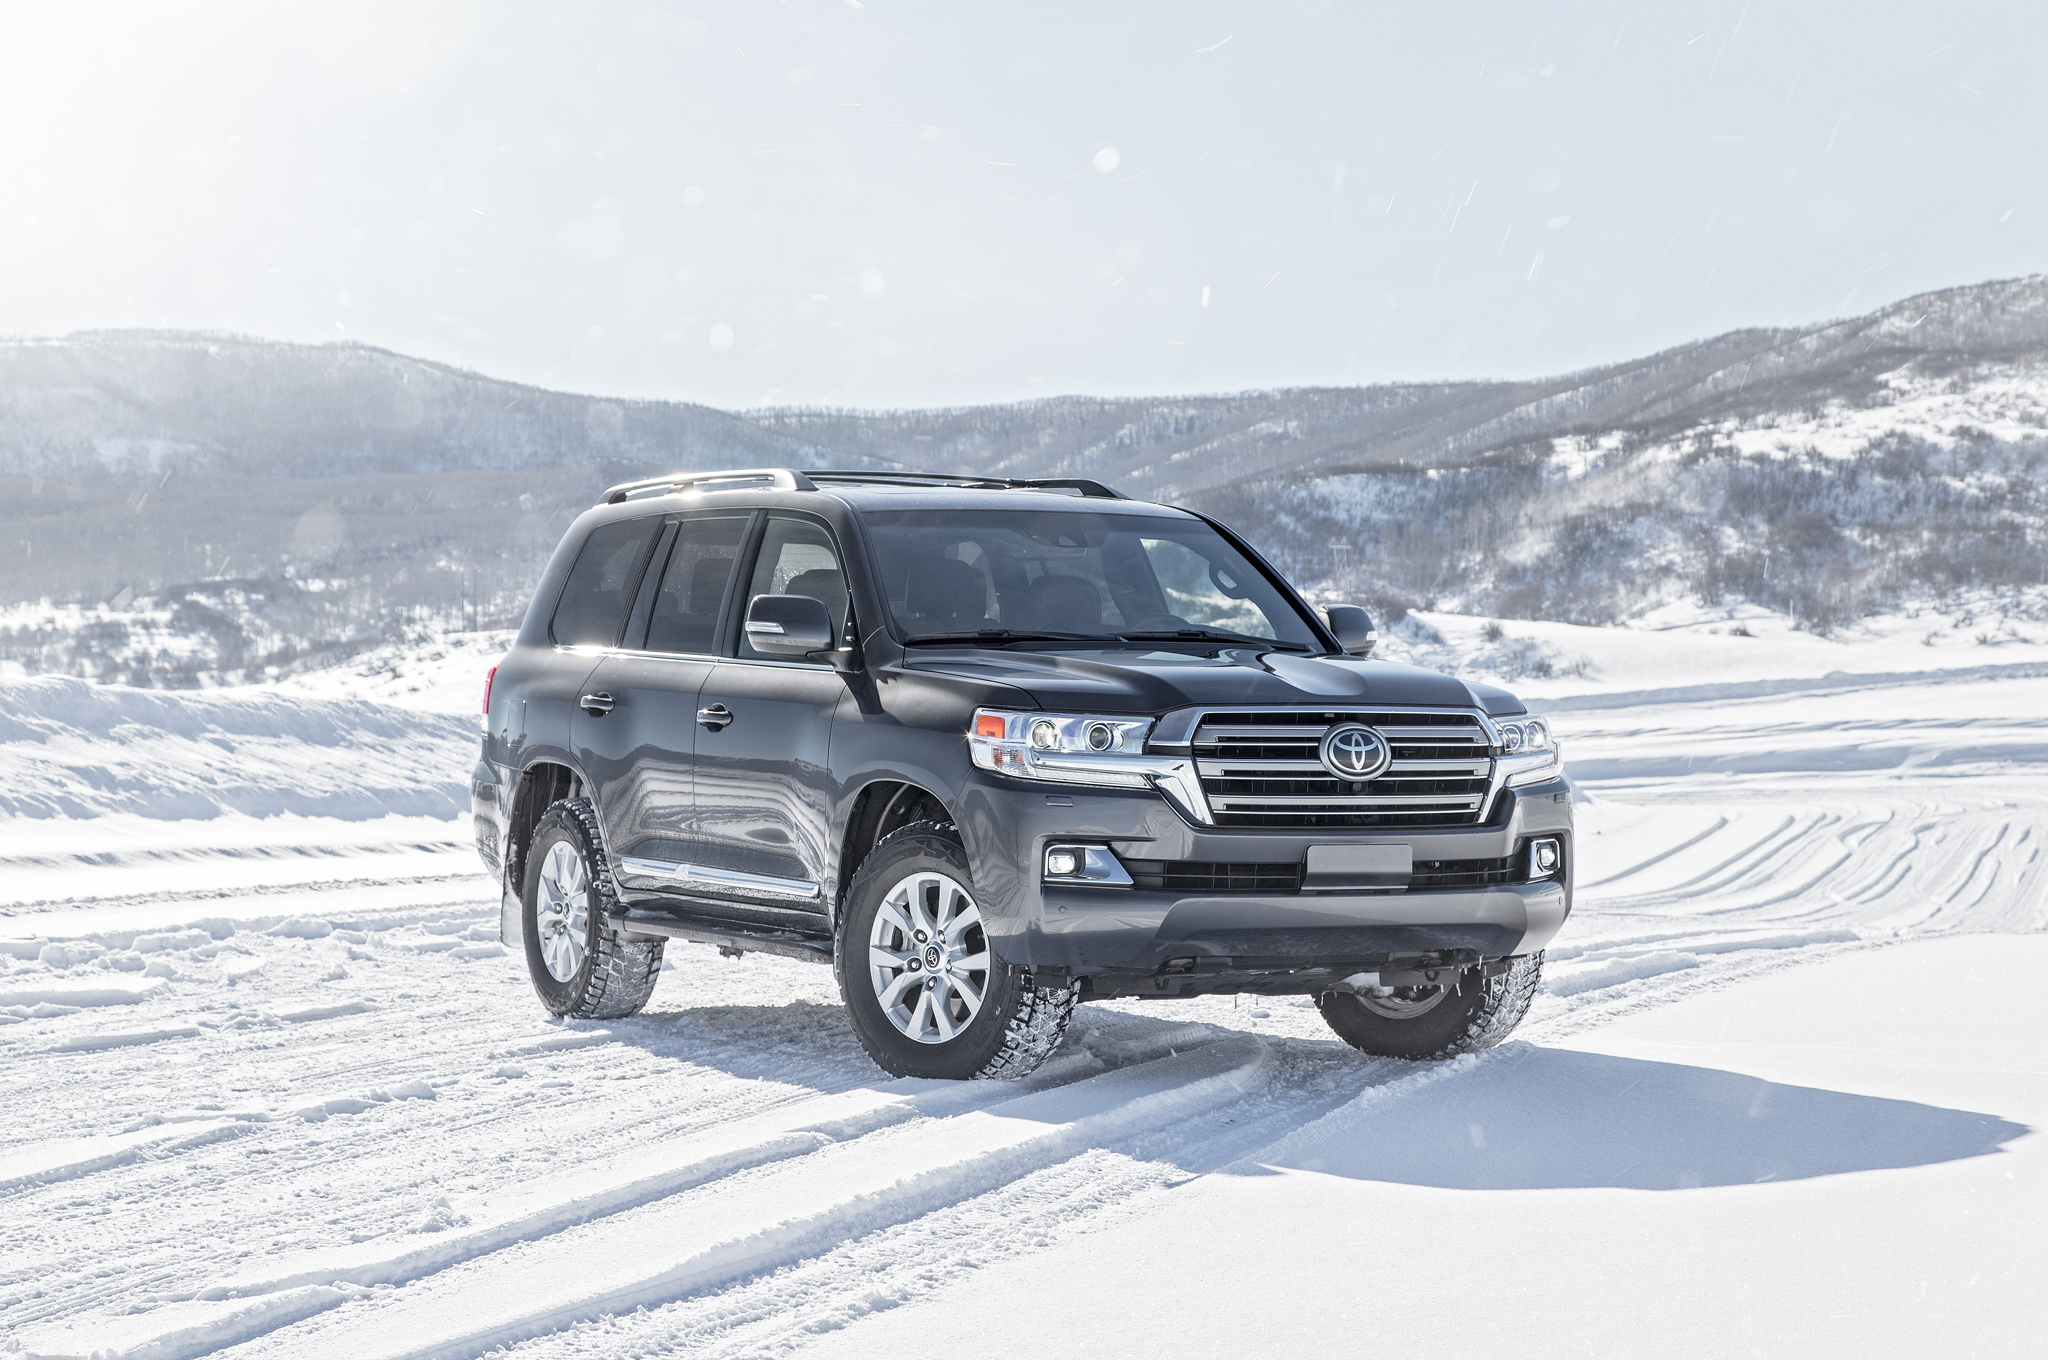 Toyota Land Cruiser Pics, Vehicles Collection